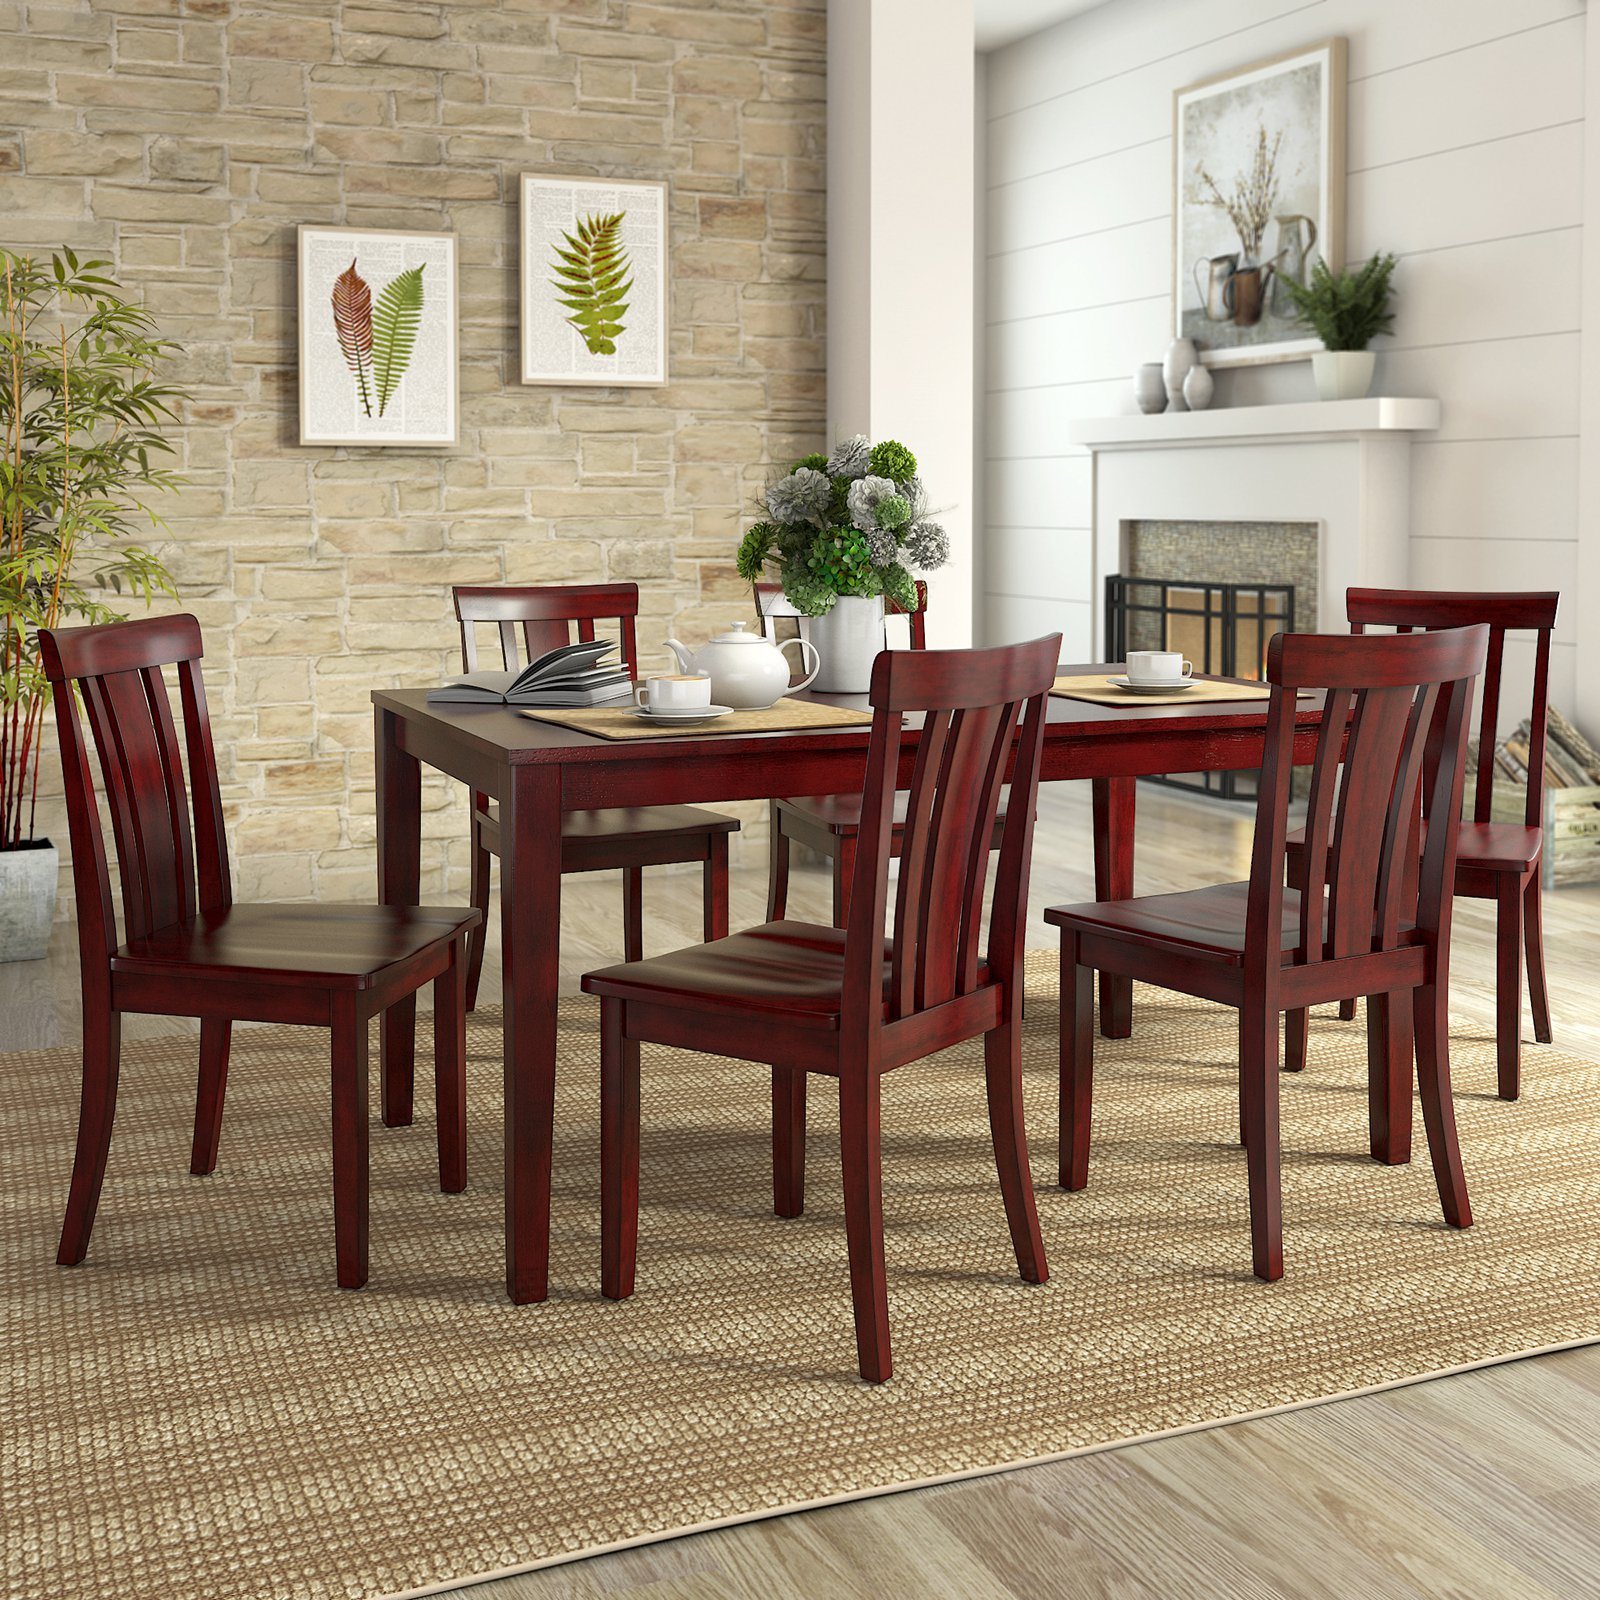 Lexington Large Dining Set with 6 Slat Back Chairs